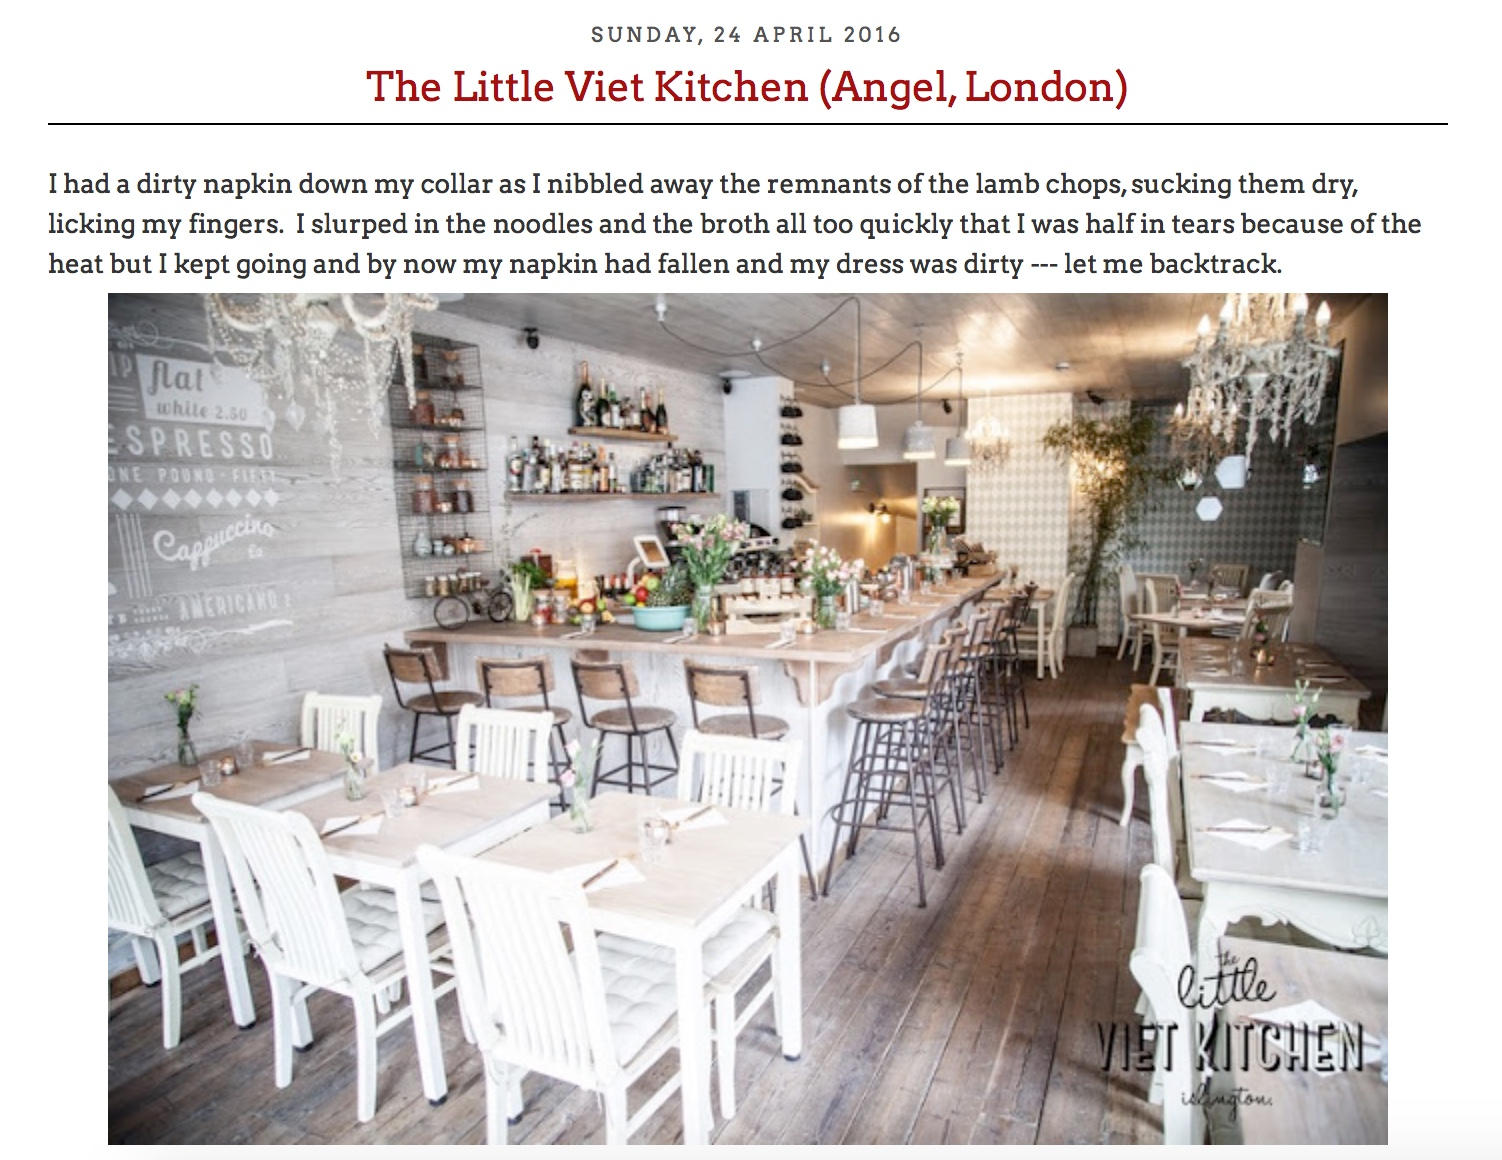 The team at Happy Belly swung by and enjoyed a delicious feast with us recently, check out their review!   http://happyxbelly.blogspot.com/2016/04/the-little-viet-kitchen-angel-london.html